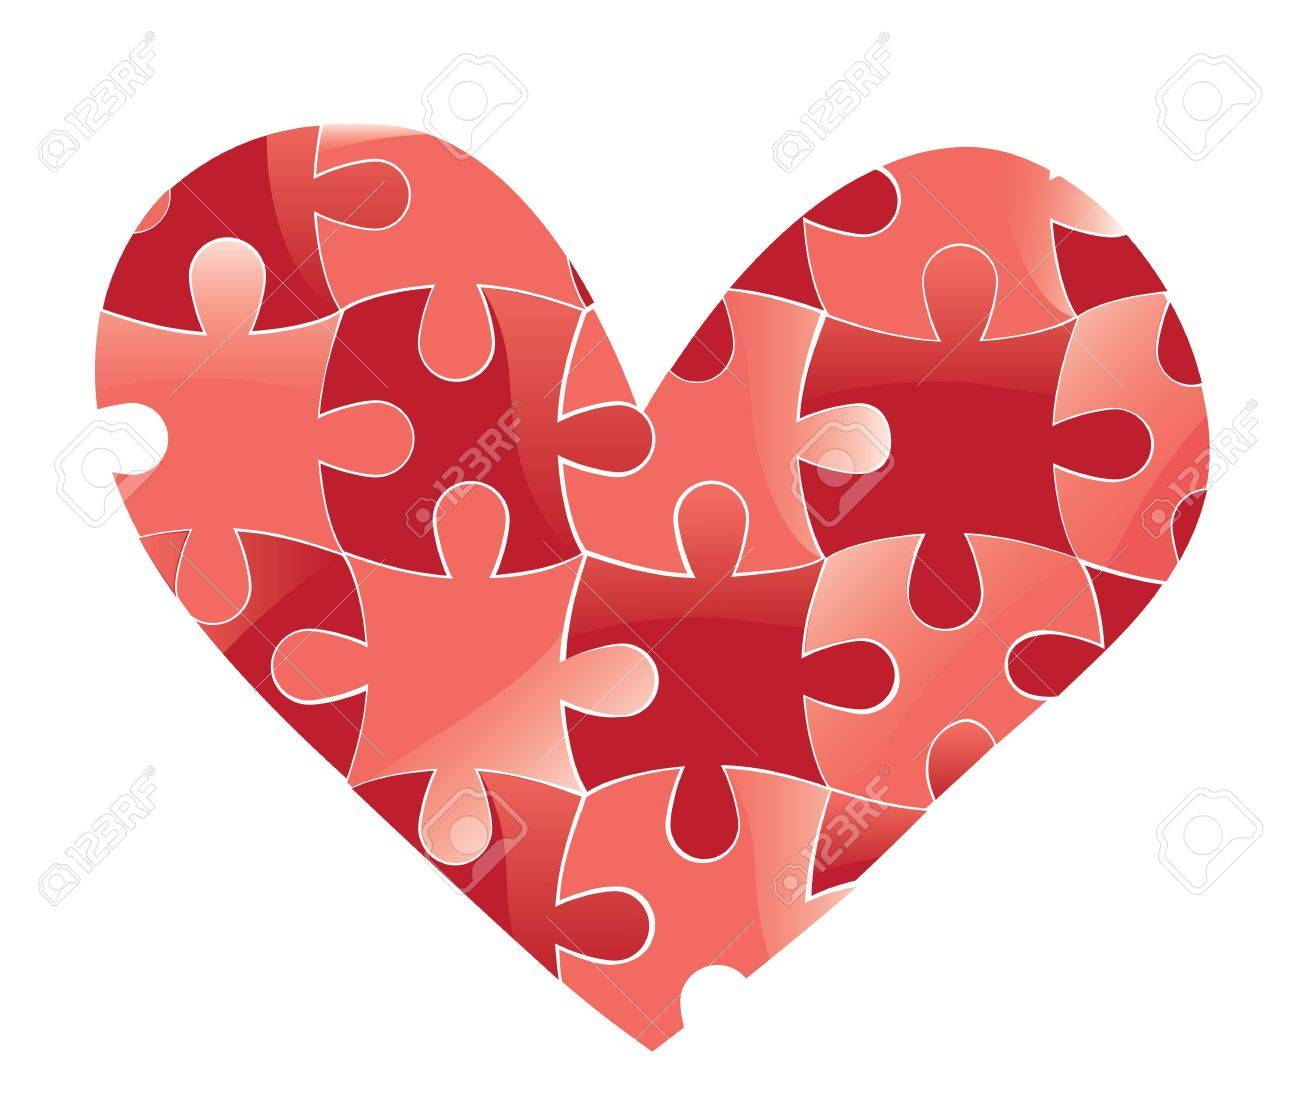 Heart puzzle. Love vector valentine romantic background. Design element. Stock Vector - 11816188